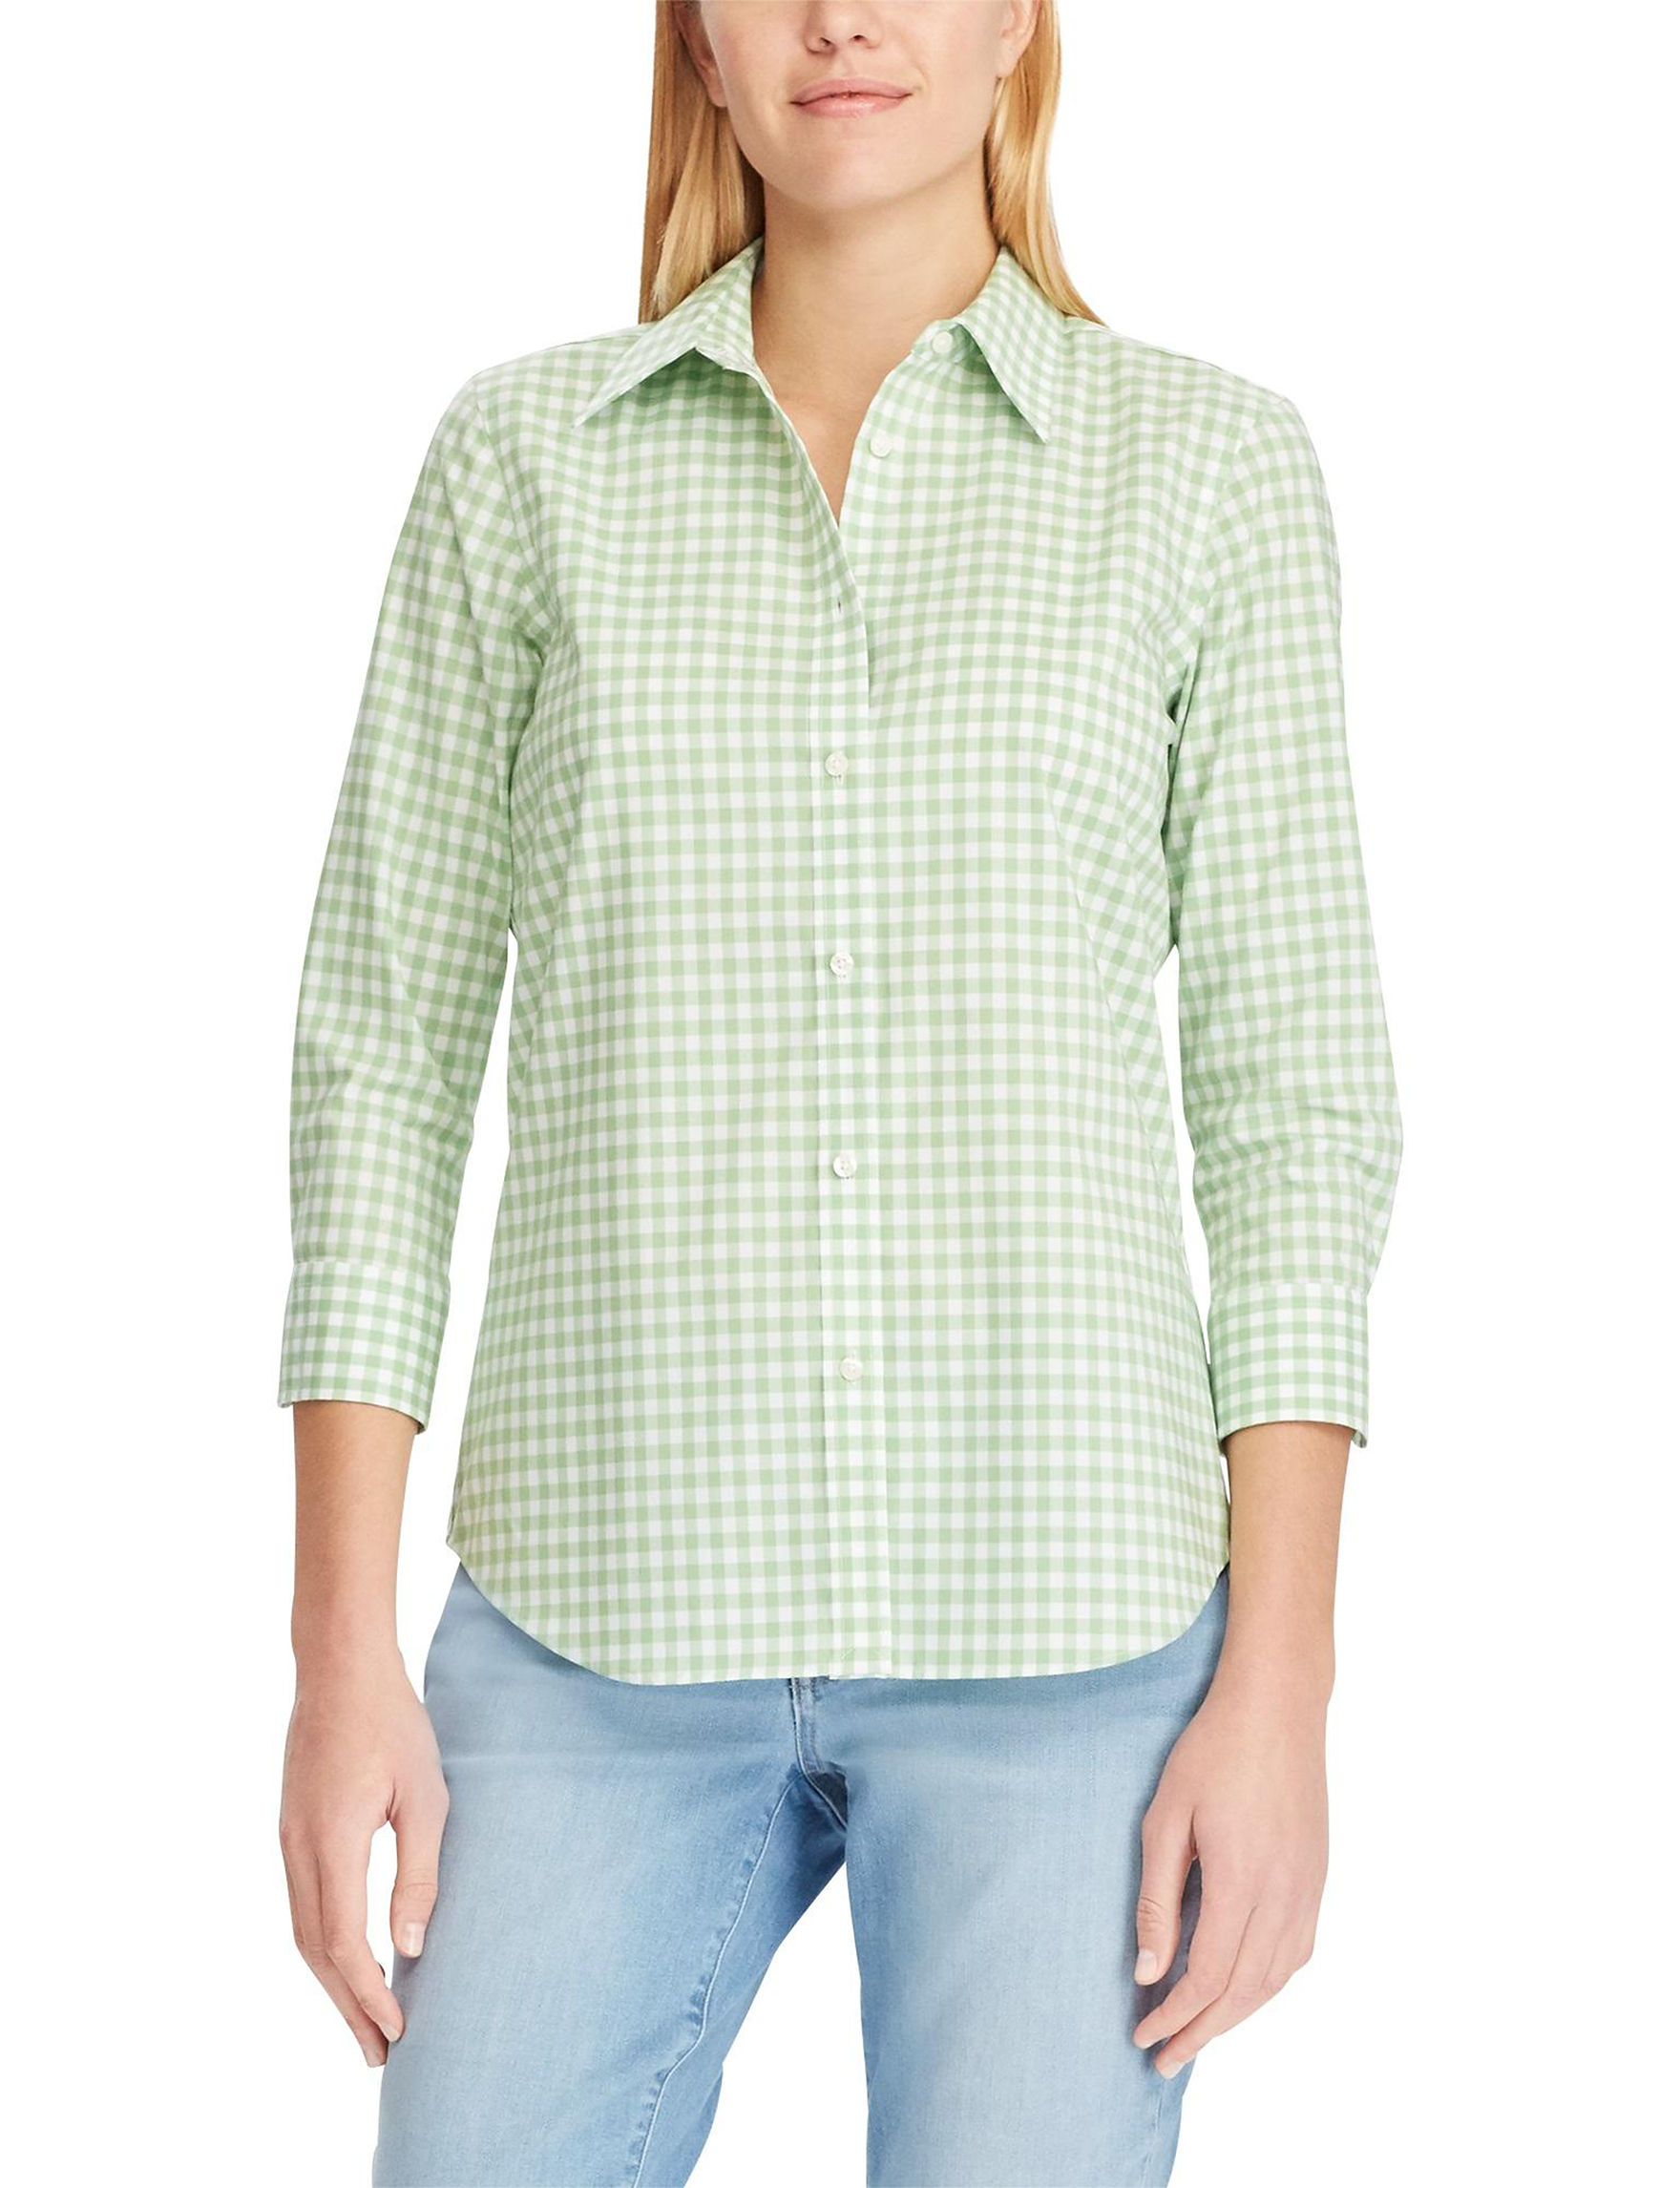 Chaps Green Gingham Shirts & Blouses